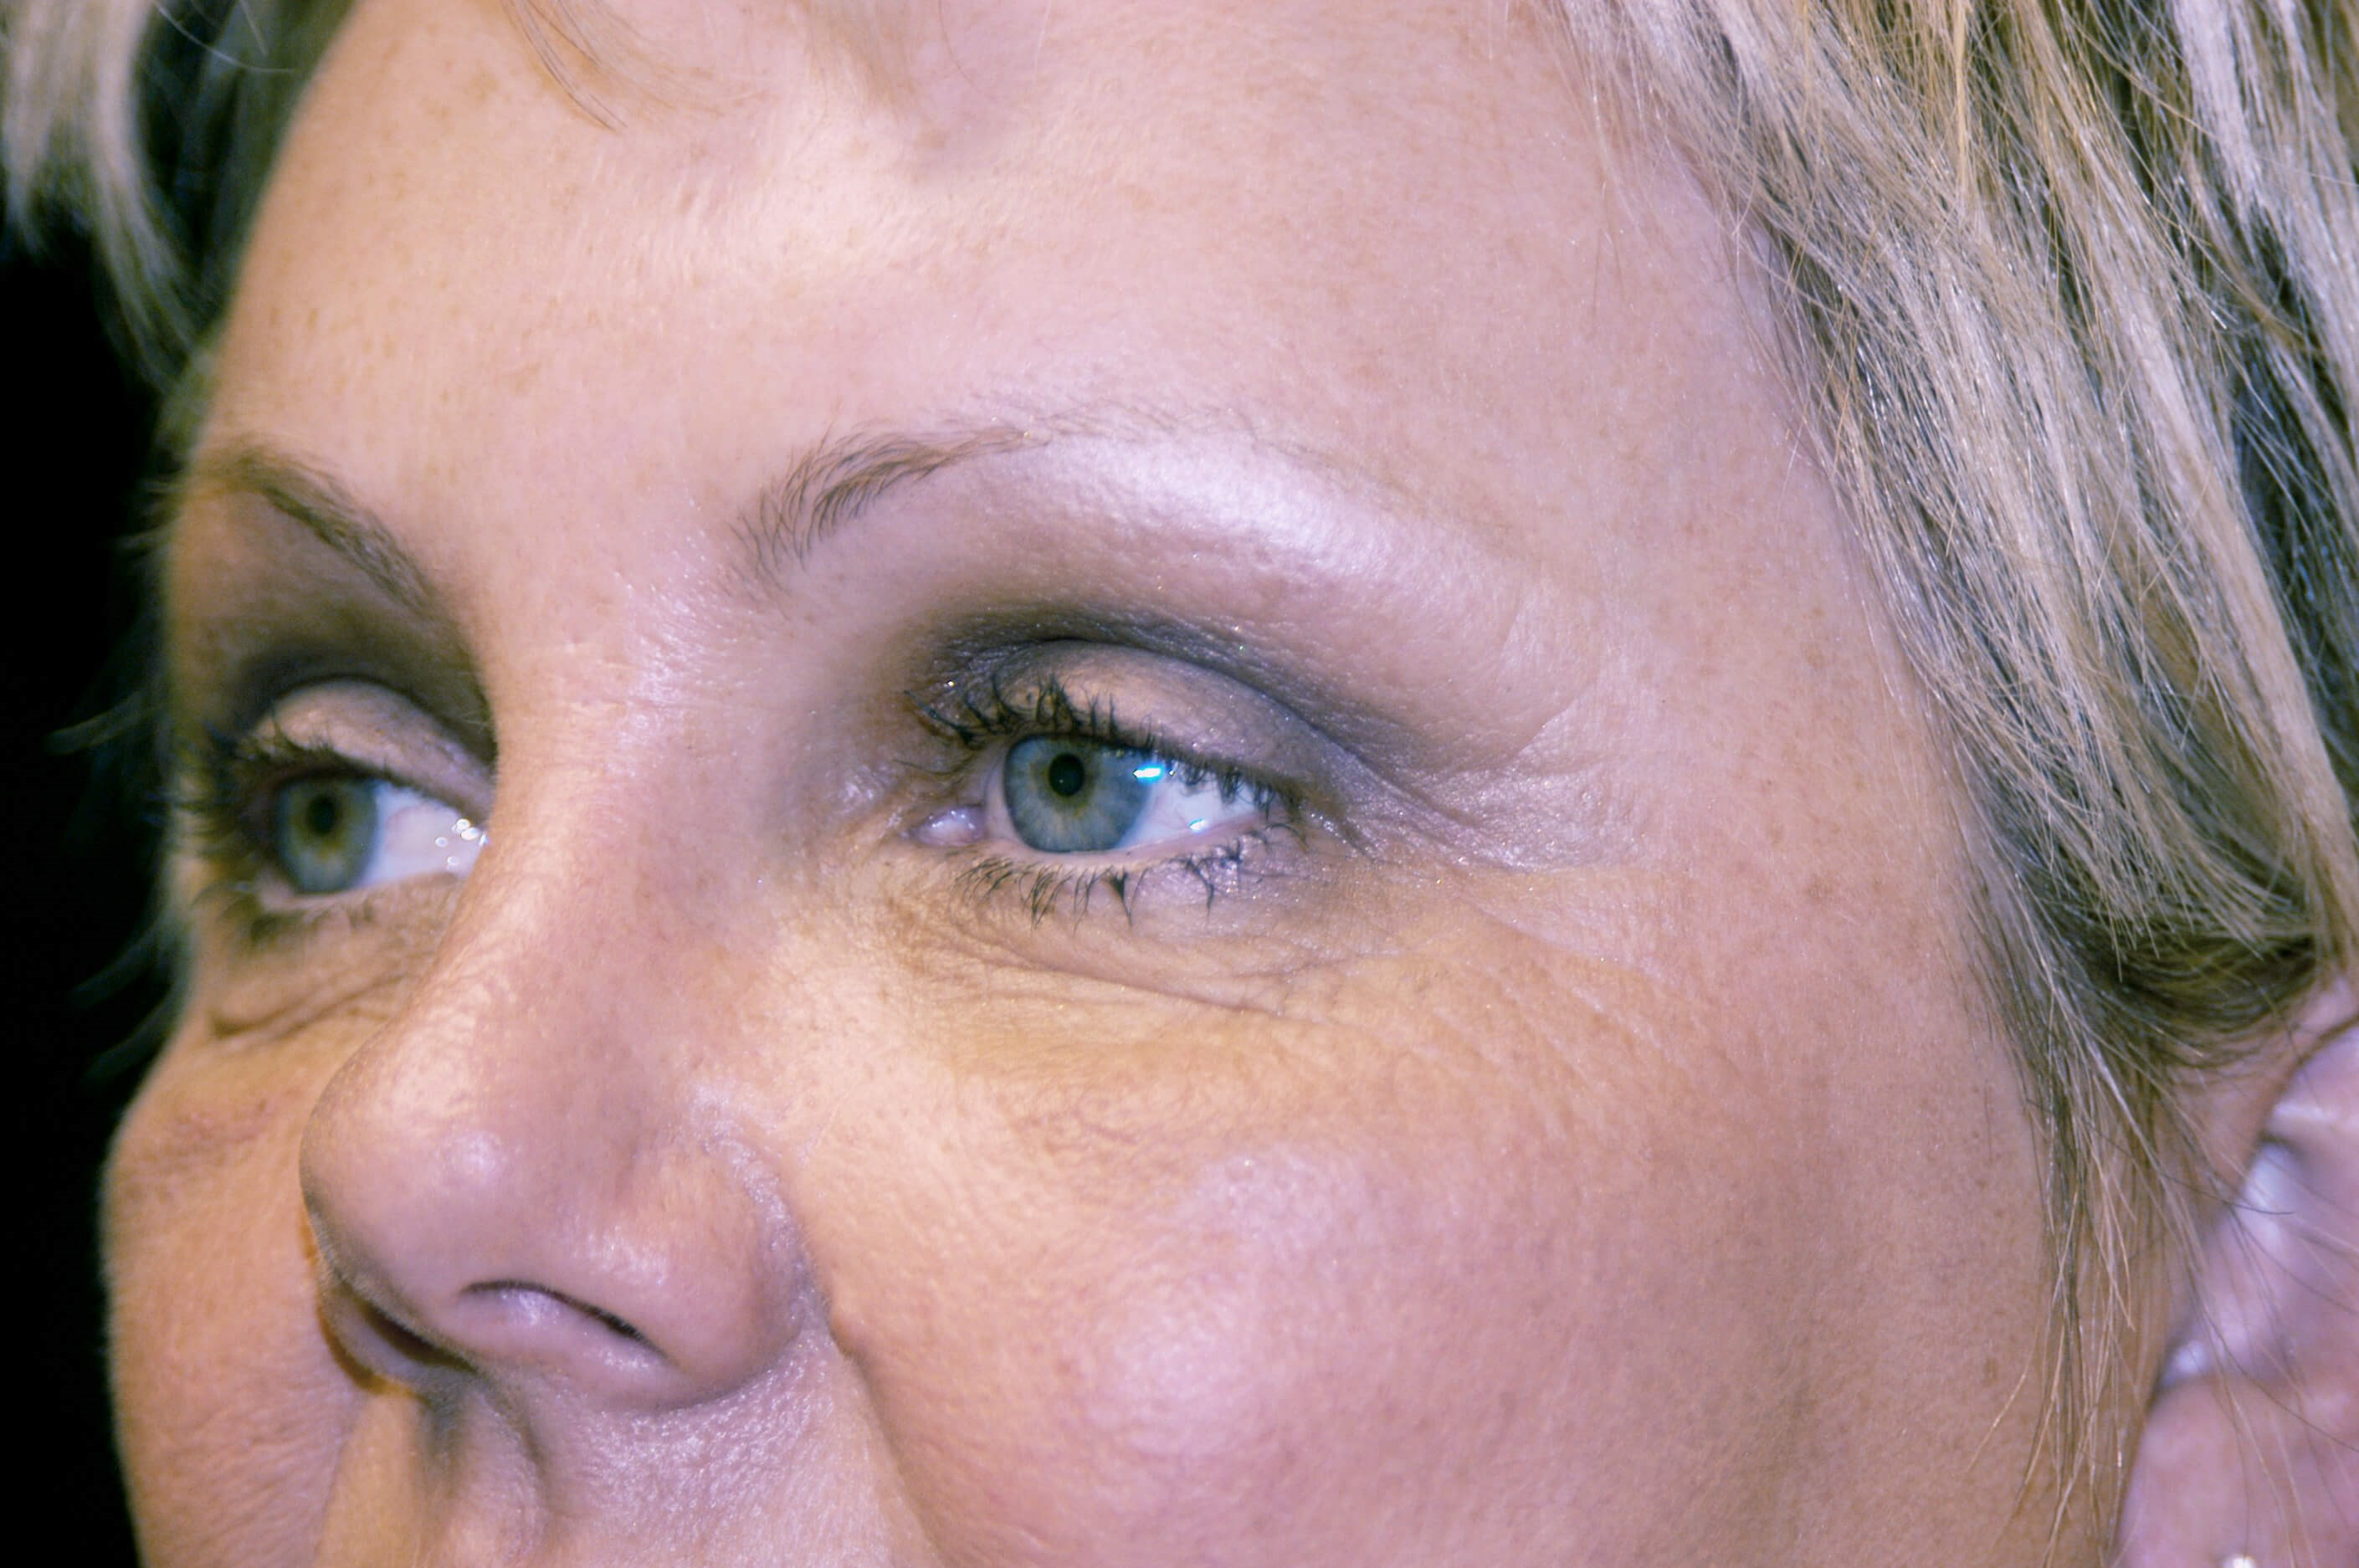 DALLAS, TEXAS WOMAN SMOOTHS AND LIFTS HER FOREHEAD WITH BROW LIFT SURGERY